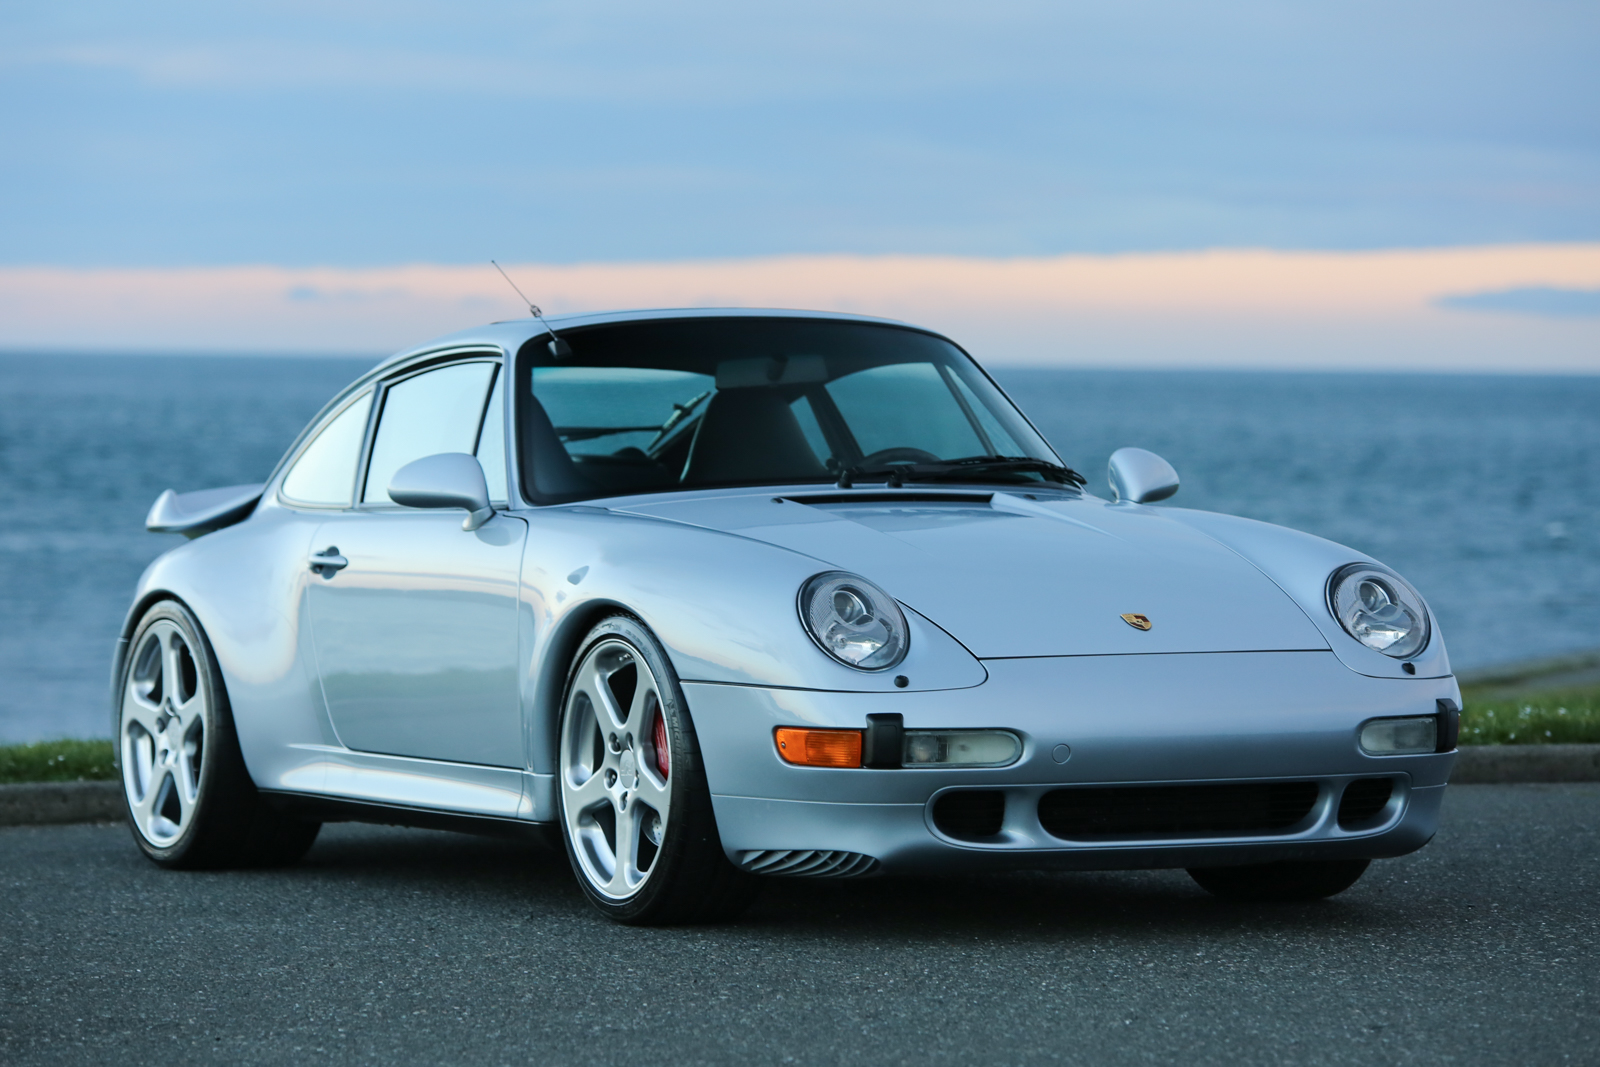 1996 Porsche 993 Turbo (911) for sale